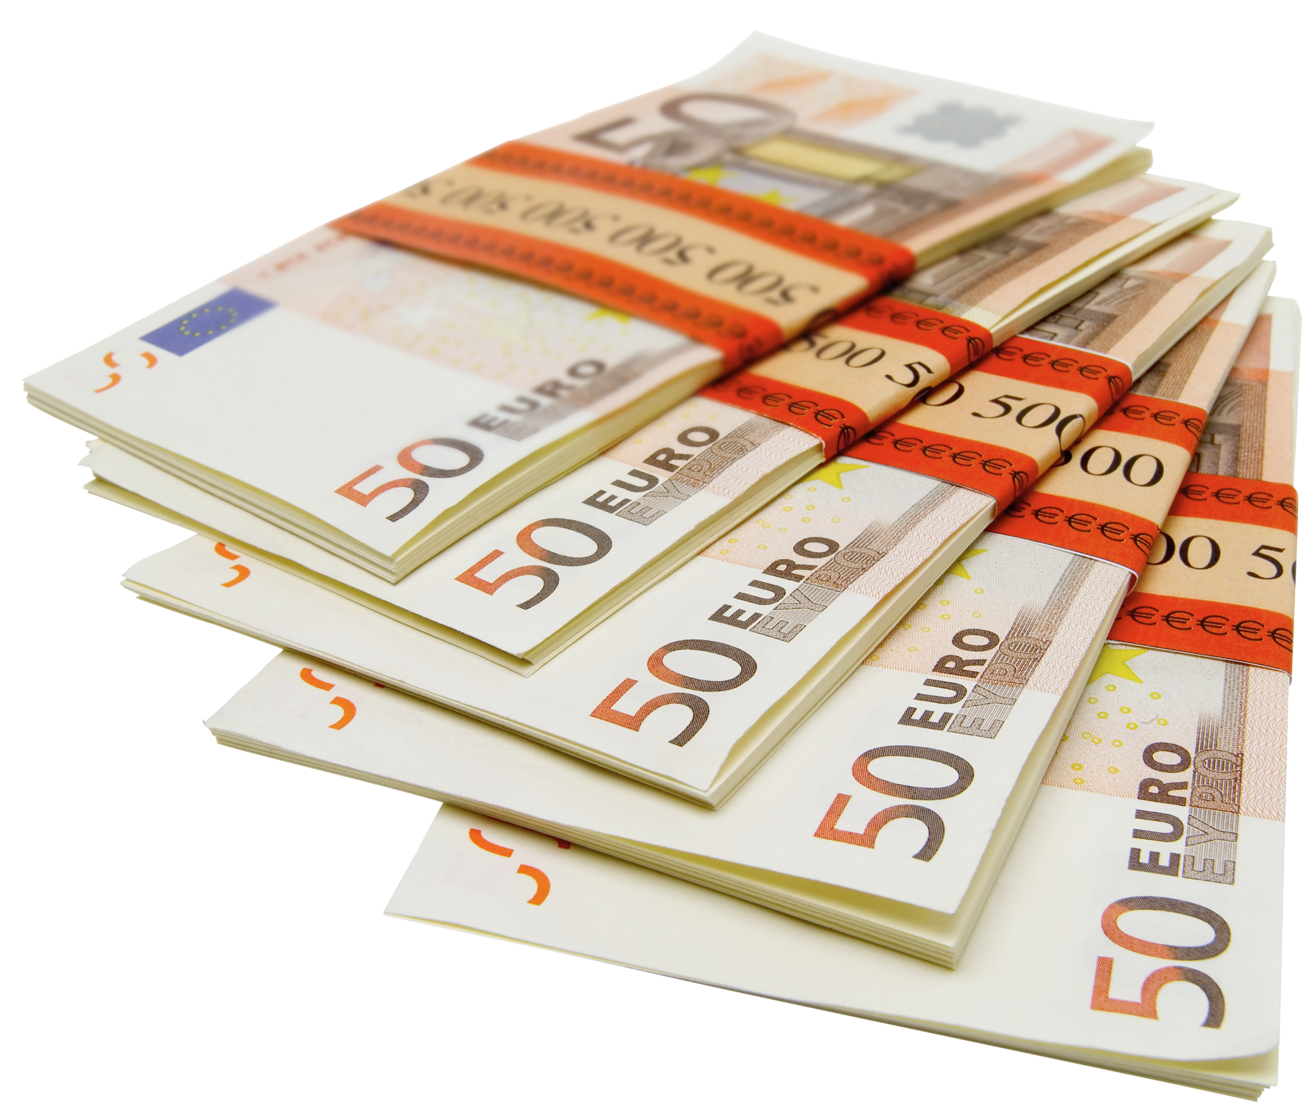 Free clipart money stacks graphic download 50 Euro Stacks PNG Picture | Gallery Yopriceville - High-Quality ... graphic download